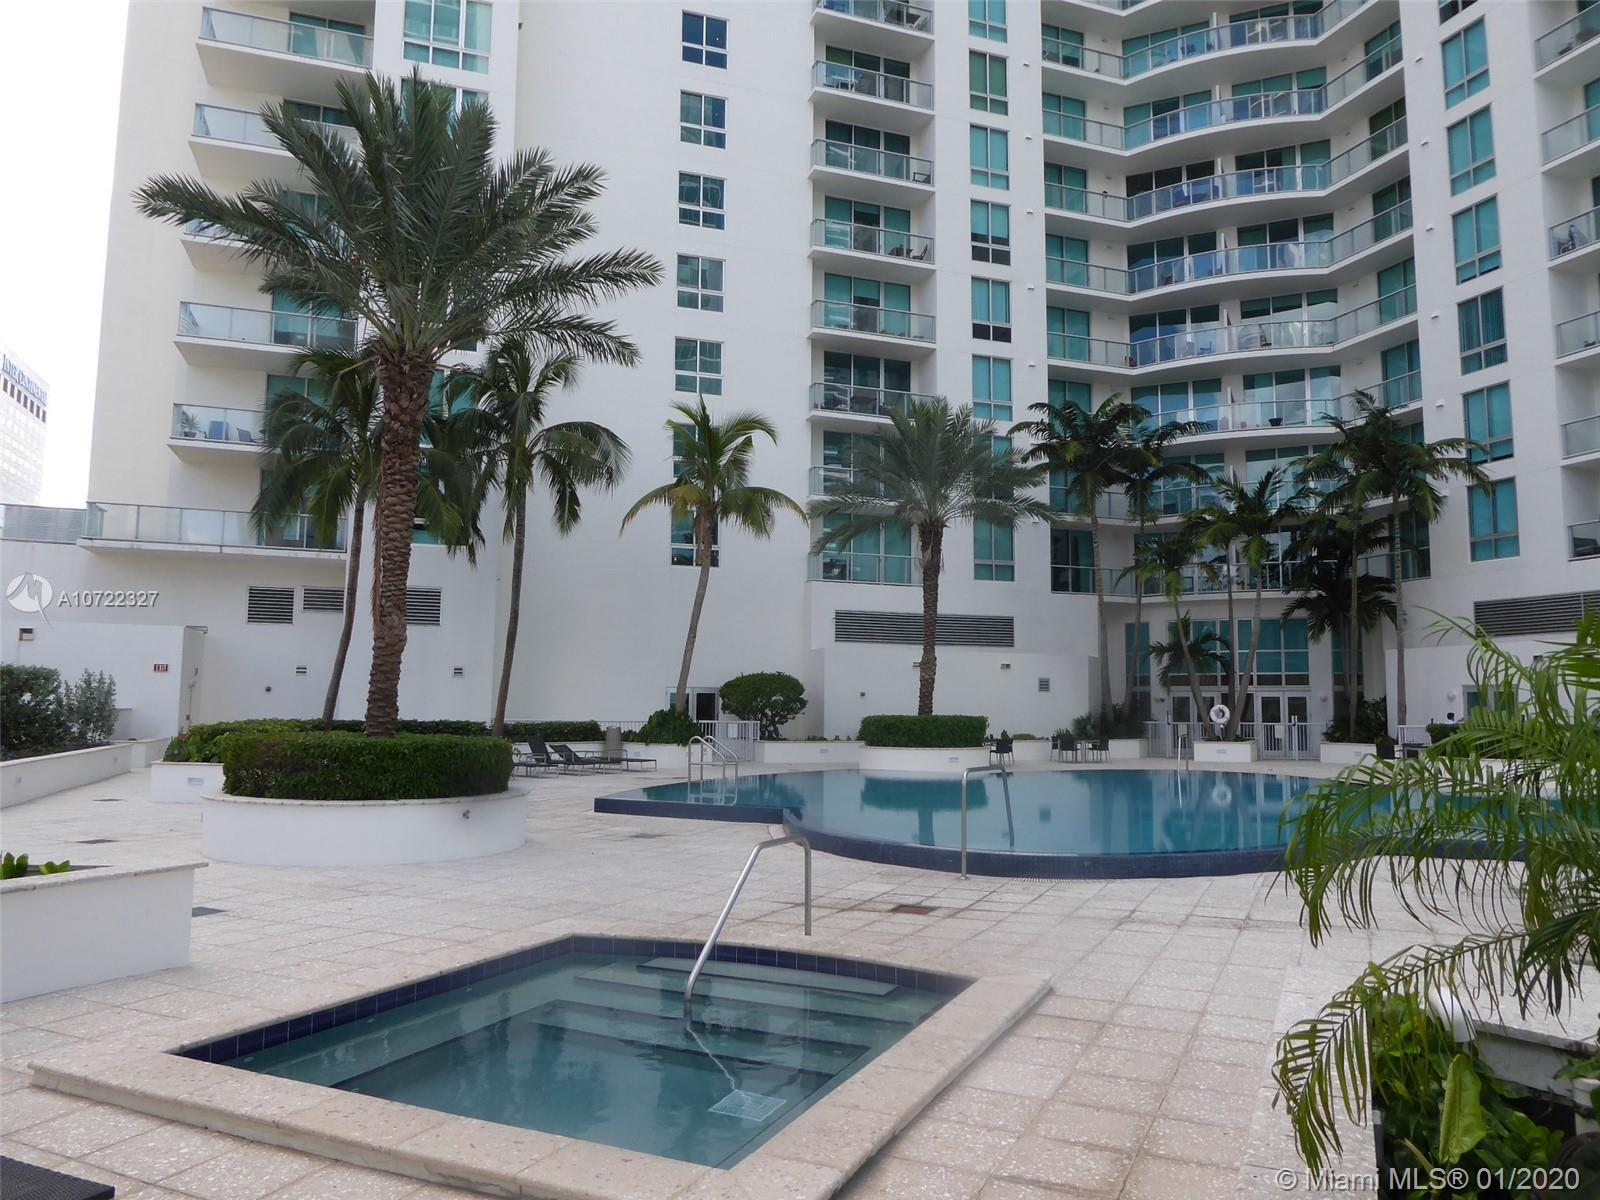 300 Biscayne blvd-PH 3802 miami-fl-33131-a10722327-Pic39